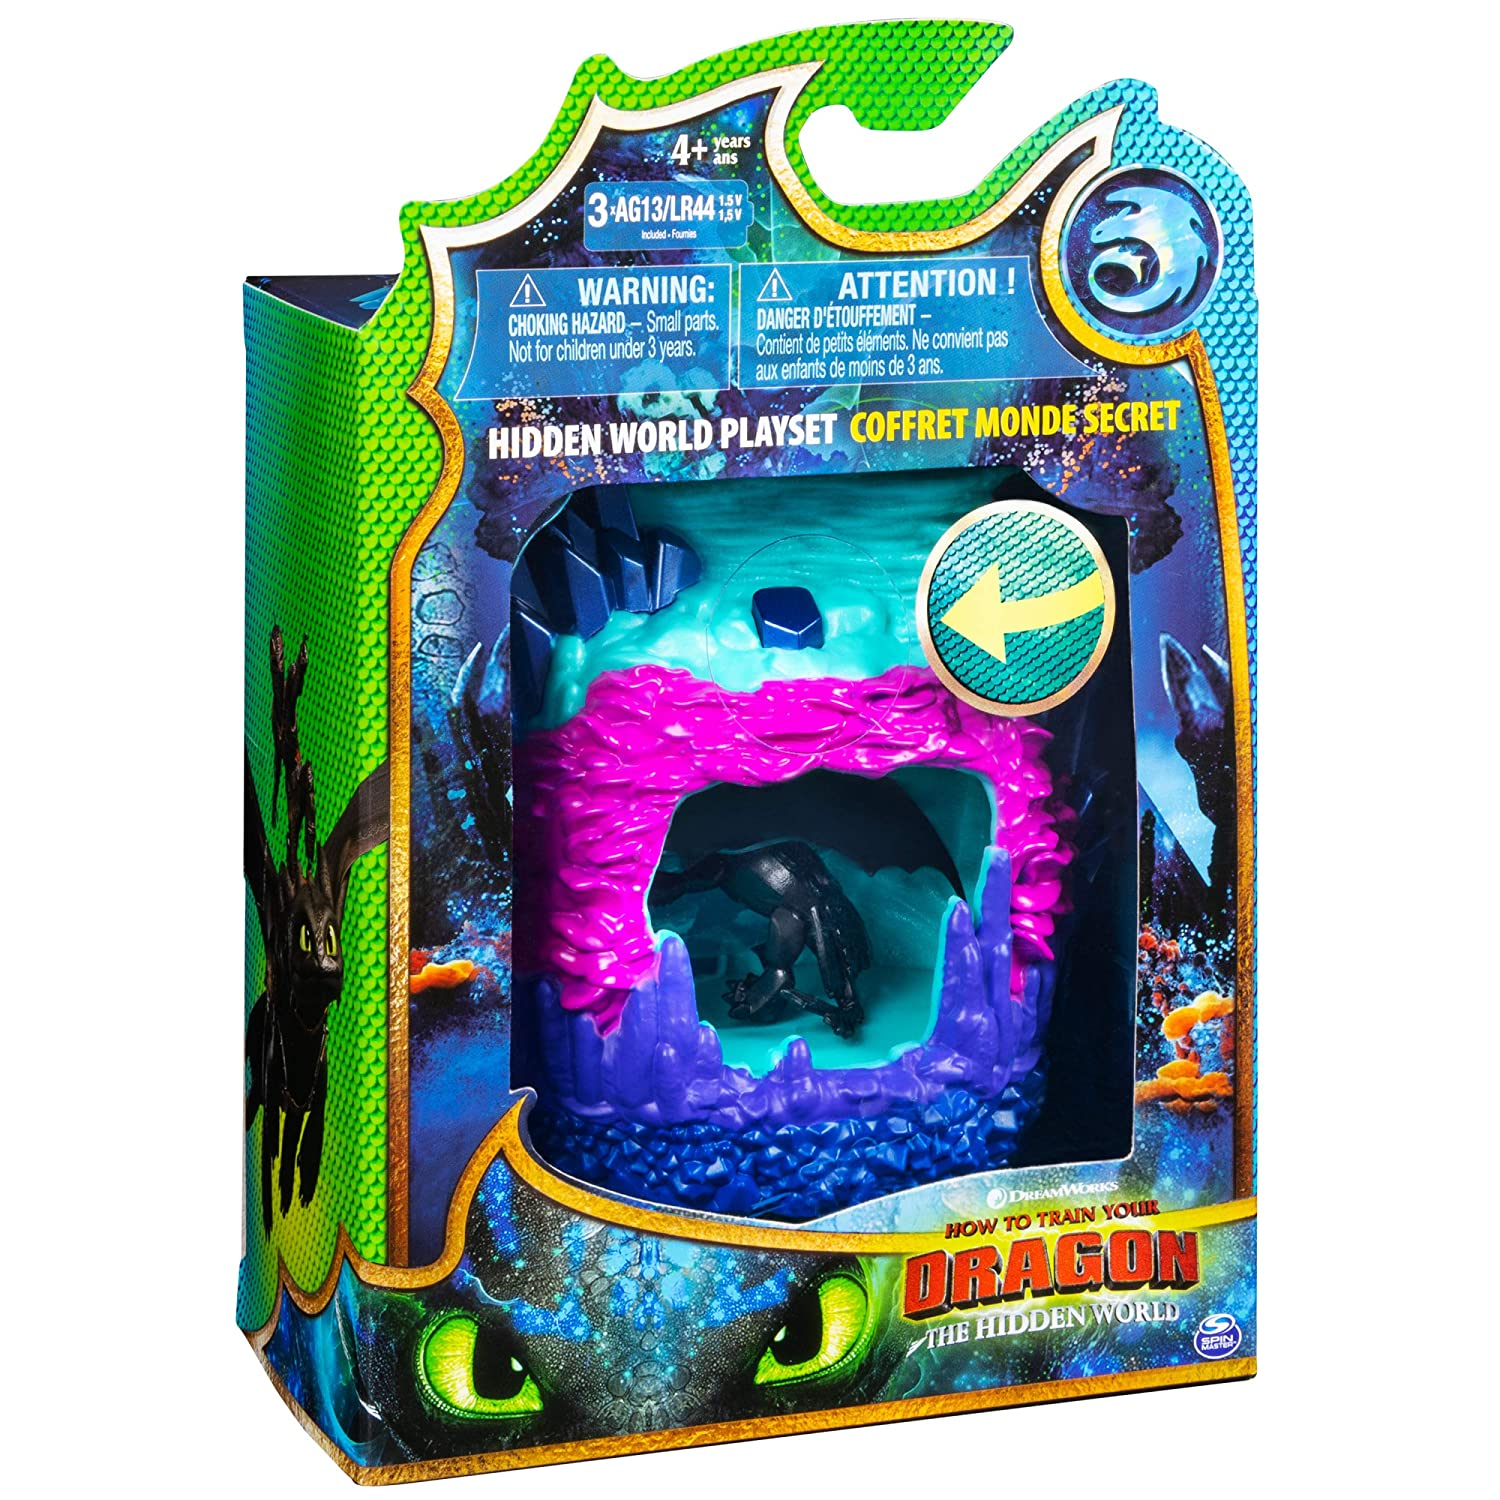 Dreamworks Dragons Hidden World Playset, Dragon Lair with Collectible  Toothless Figure, for Kids Aged 4 and Up